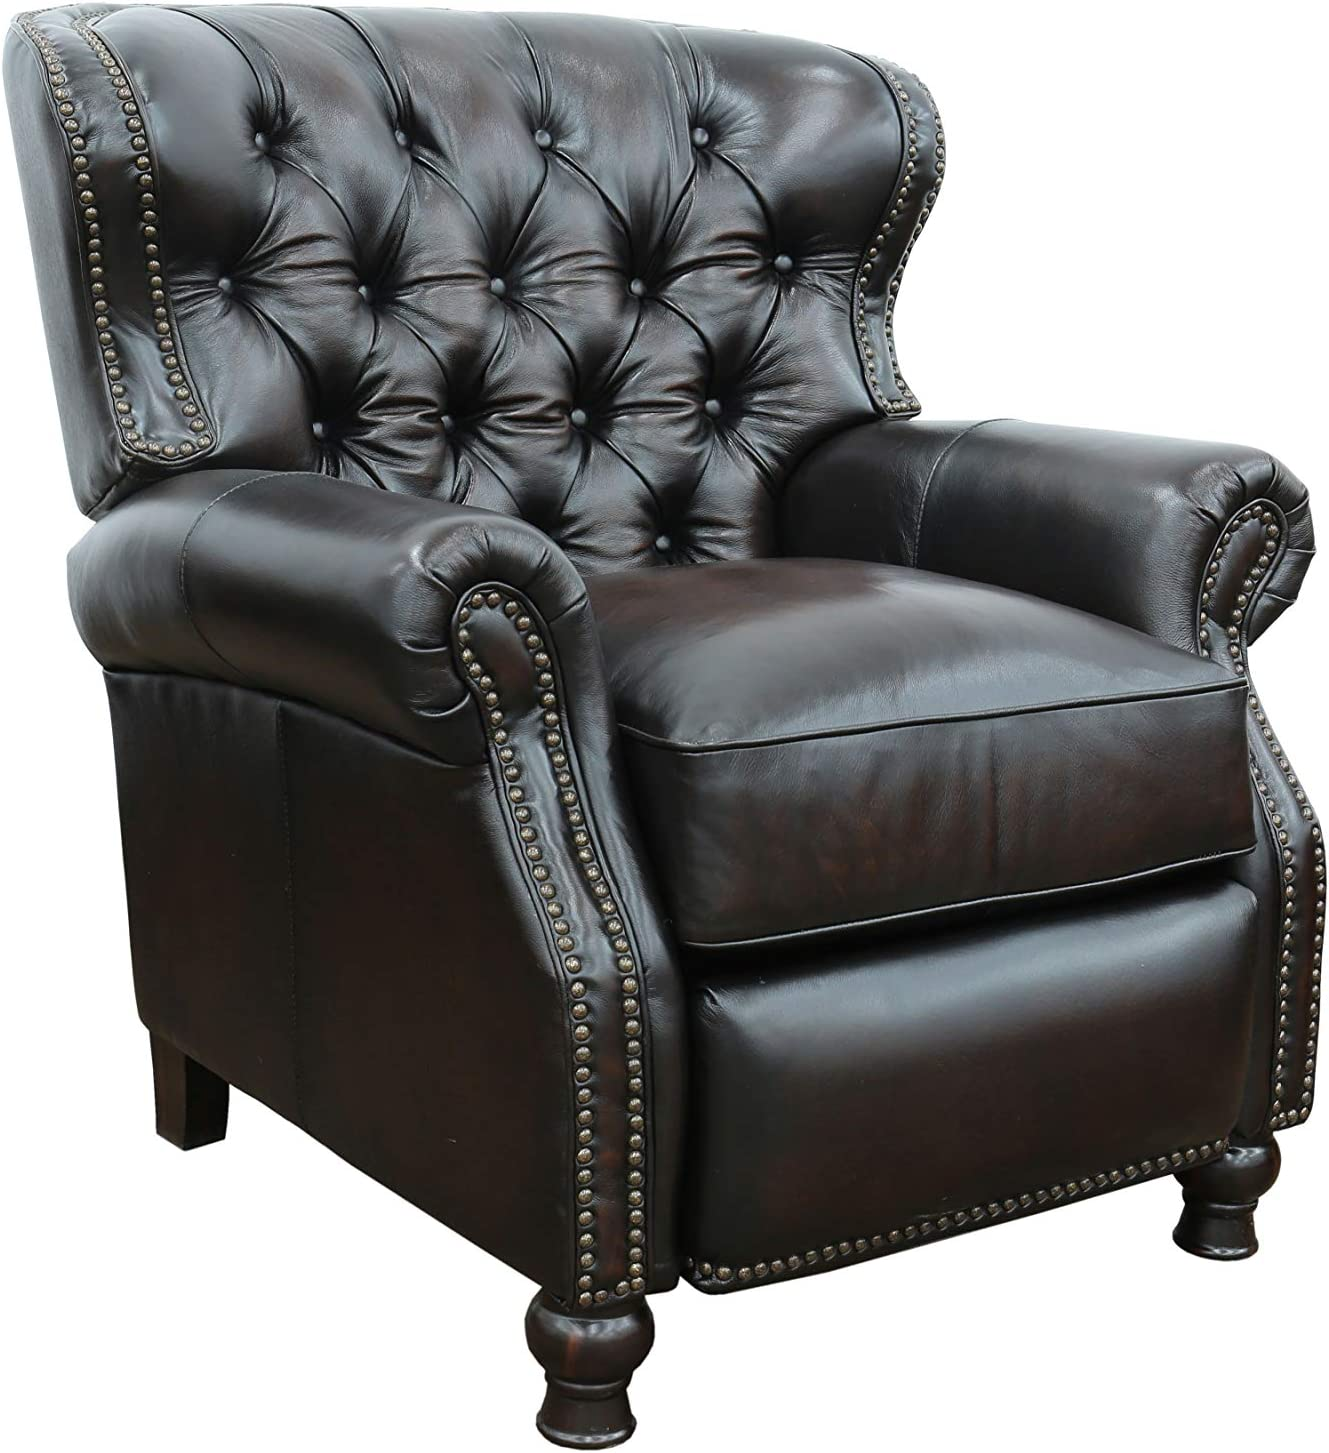 Amazon Com Presidential Ll Top Grain Leather Chair Manual Recliner By Barcalounger Furniture Decor